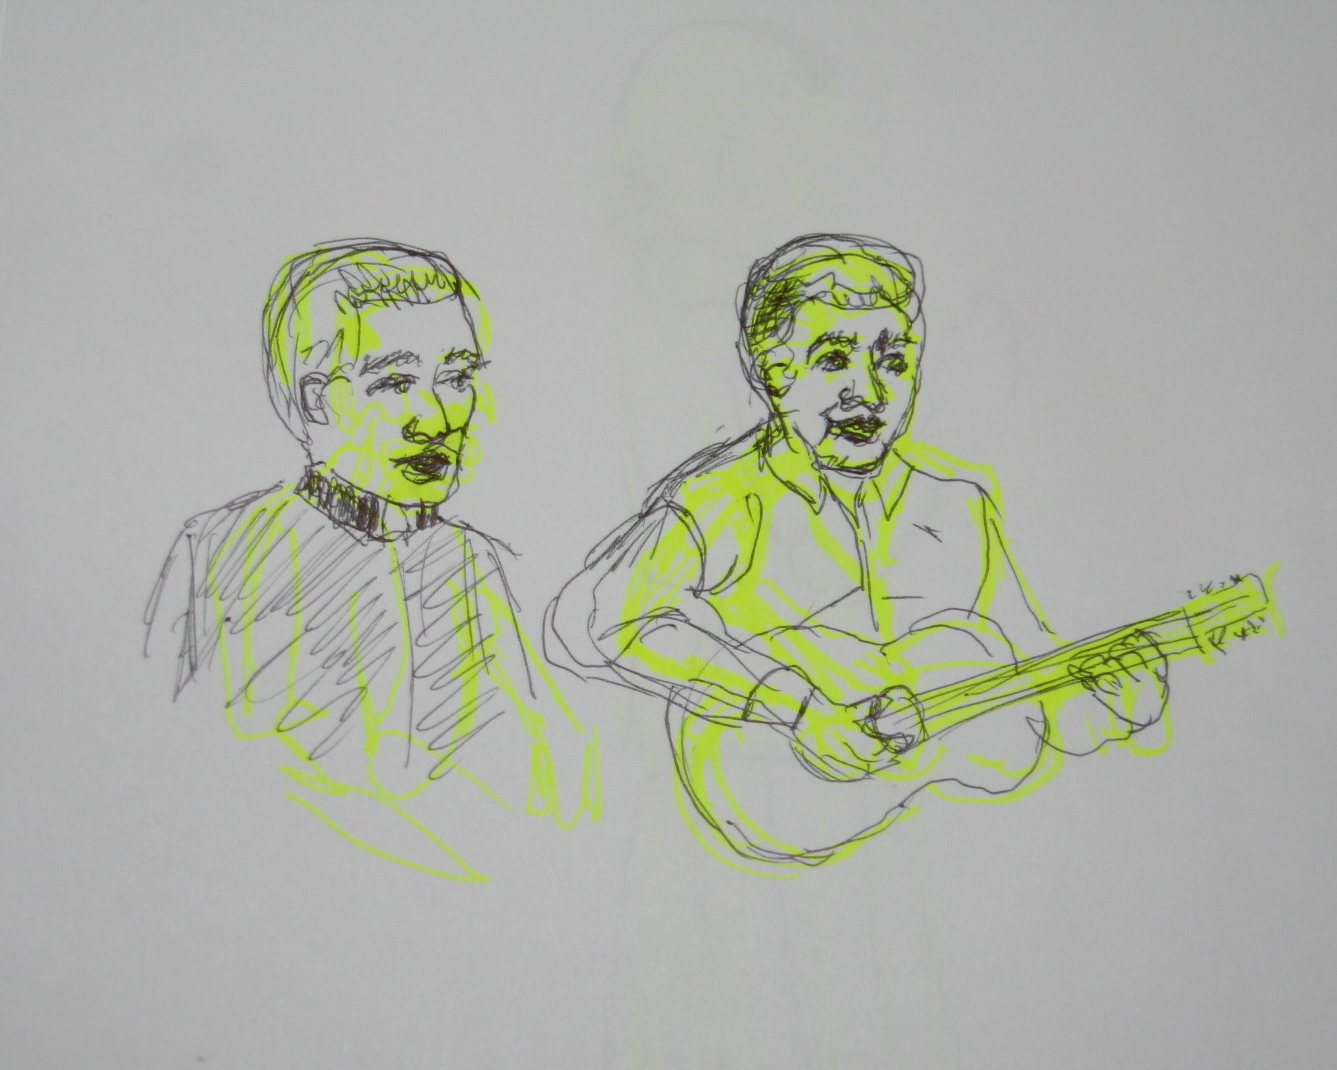 Quick sketch of guitarists (my contribution to the talent show)